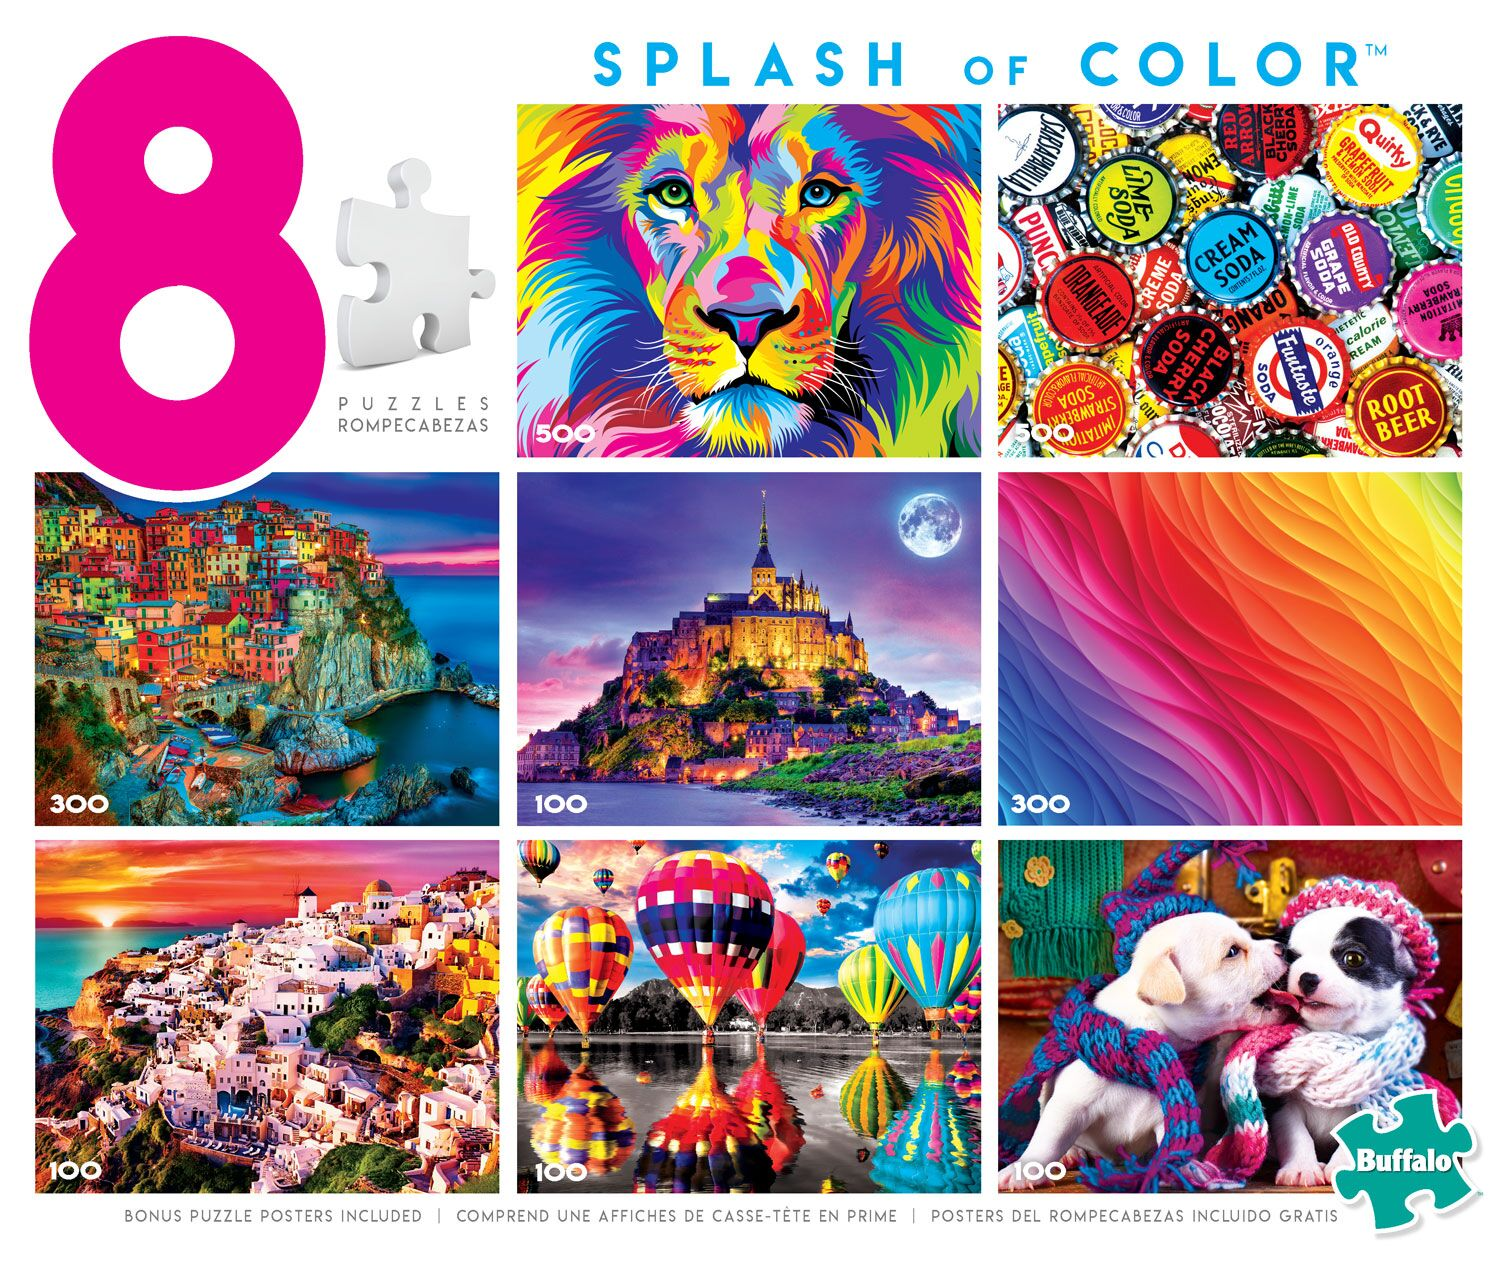 8-in-1 Splash of Color Puzzle Collage Jigsaw Puzzle